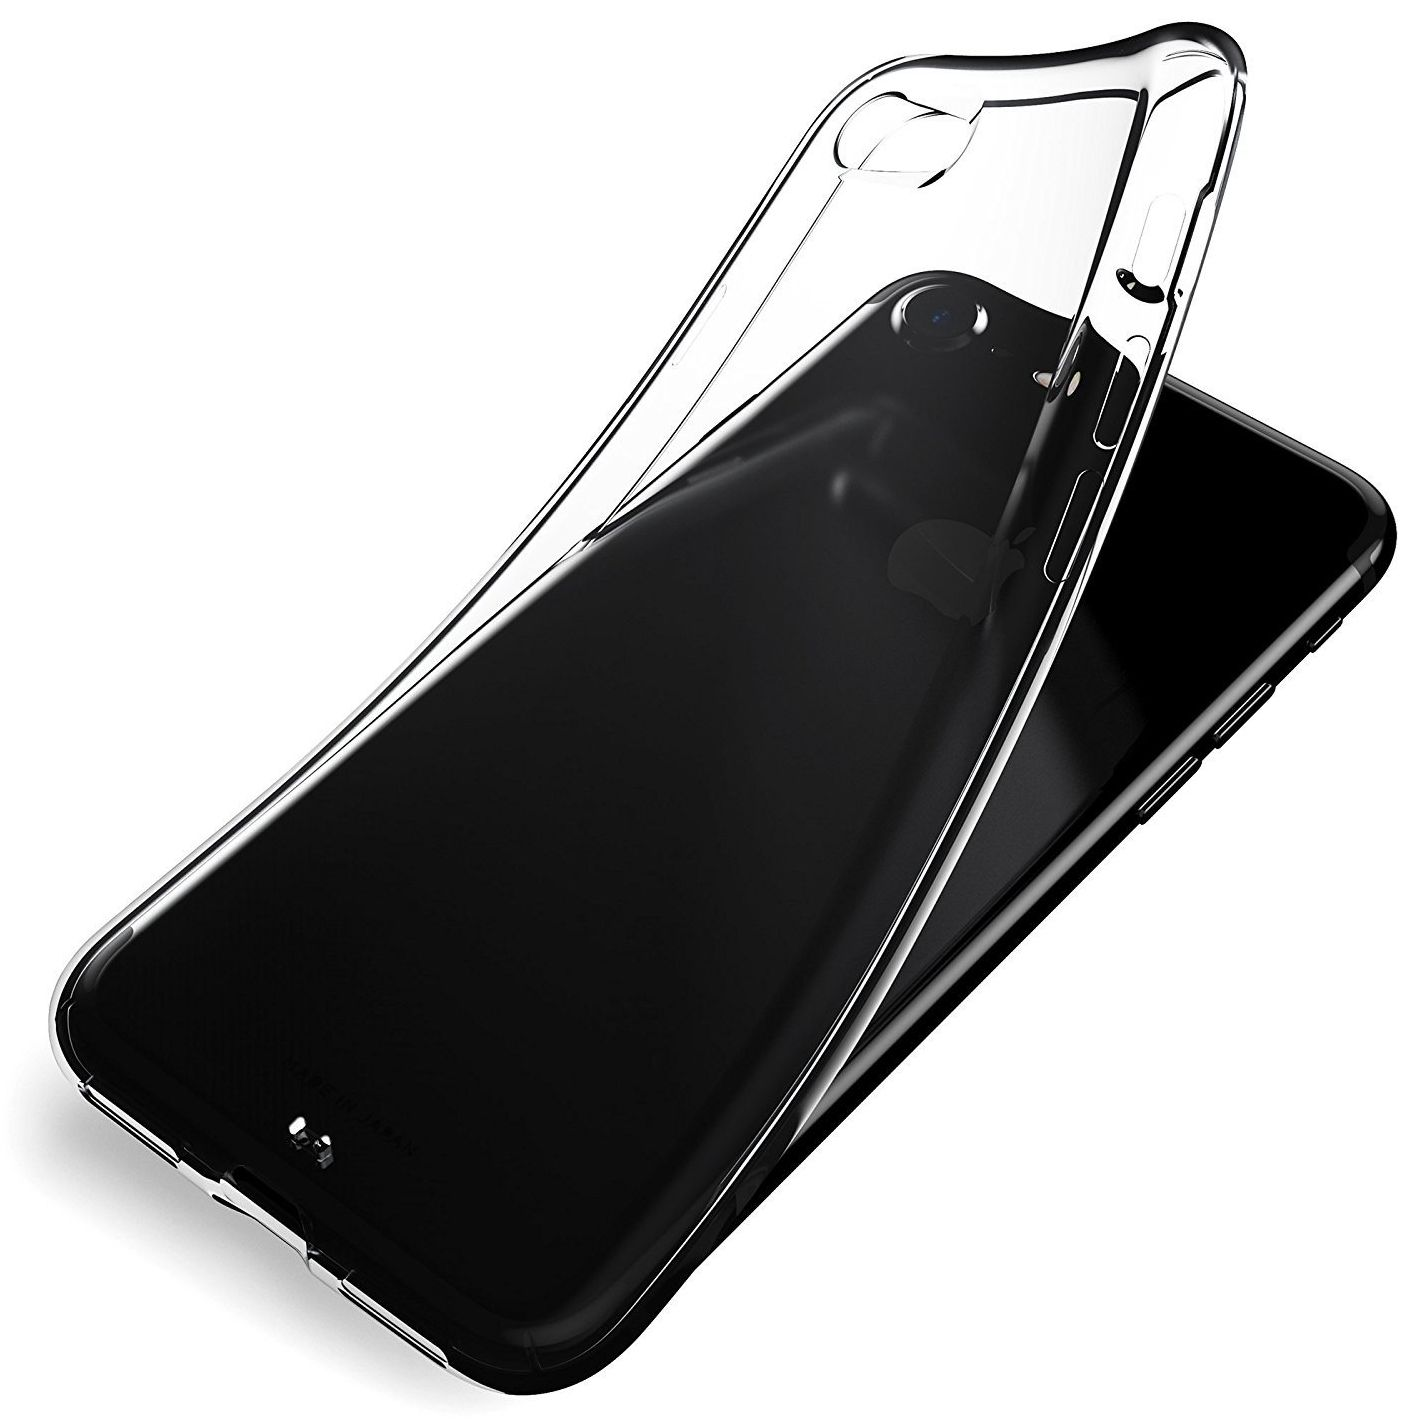 AndMesh iPhone 7 Plain Case Clear, картинка 3